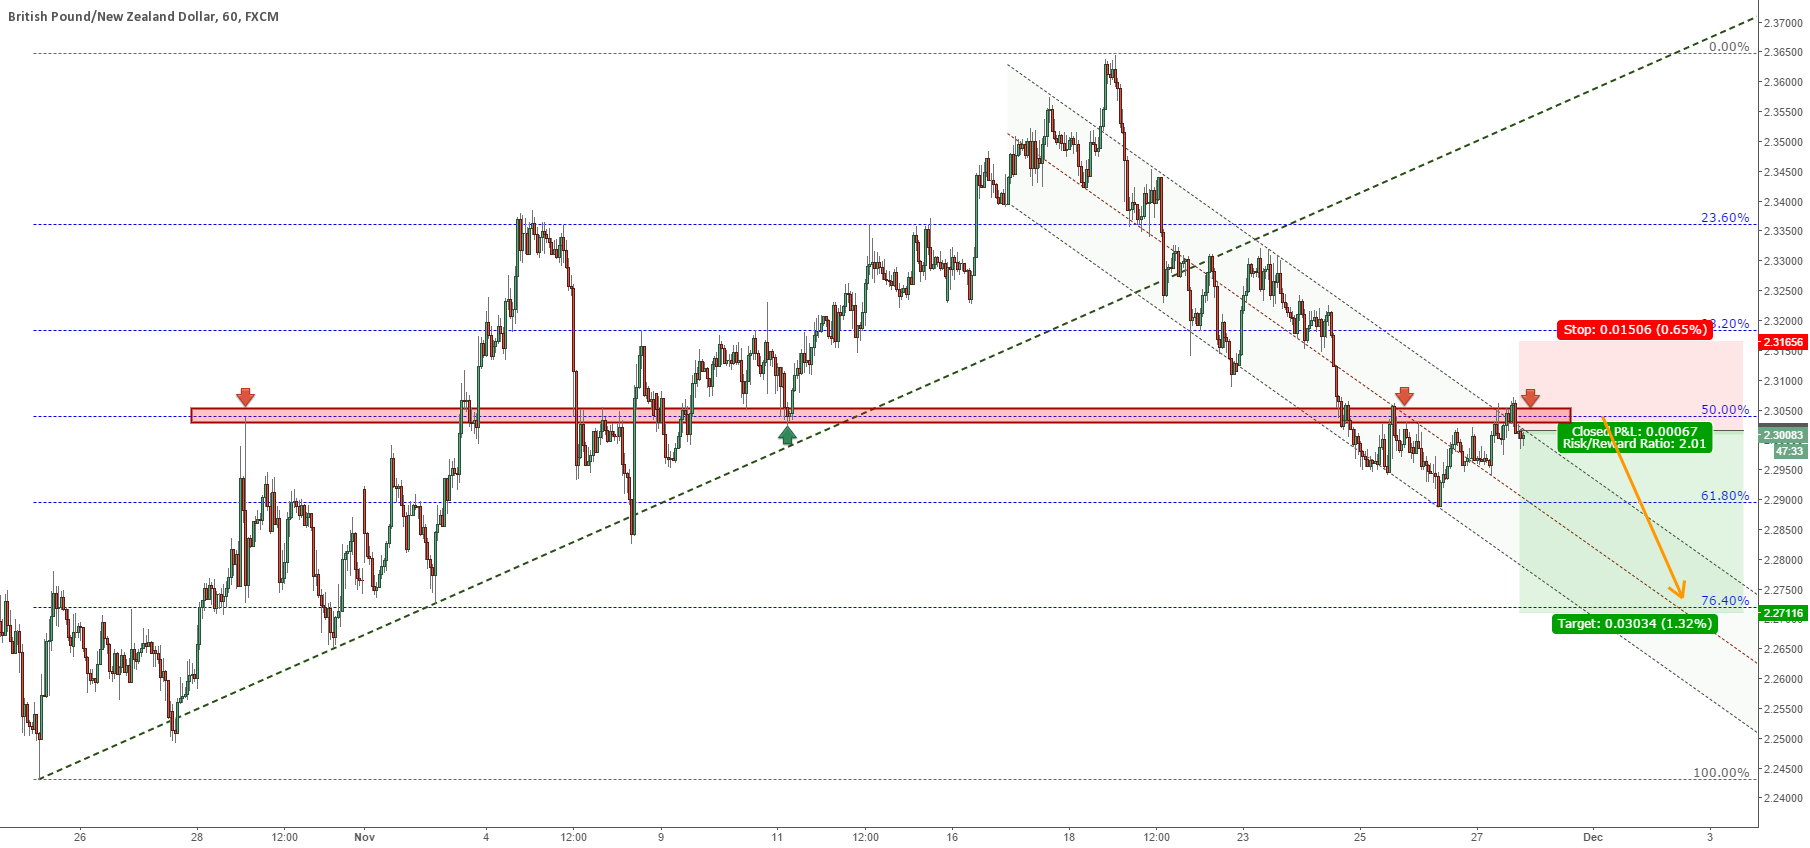 GBPNZD continues to fall